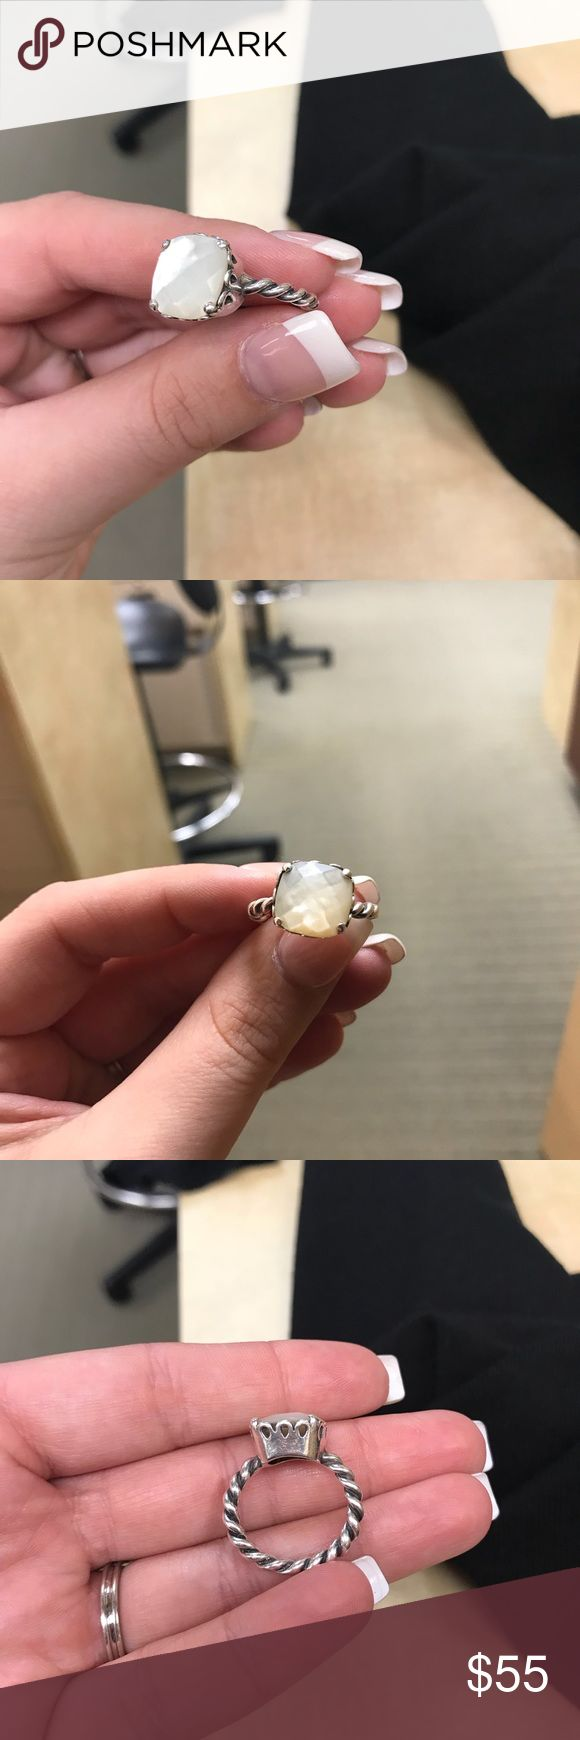 Pandora Mother of Pearl ring. Size 7 Used, but still in good shape! Make an offer! Pandora Jewelry Rings